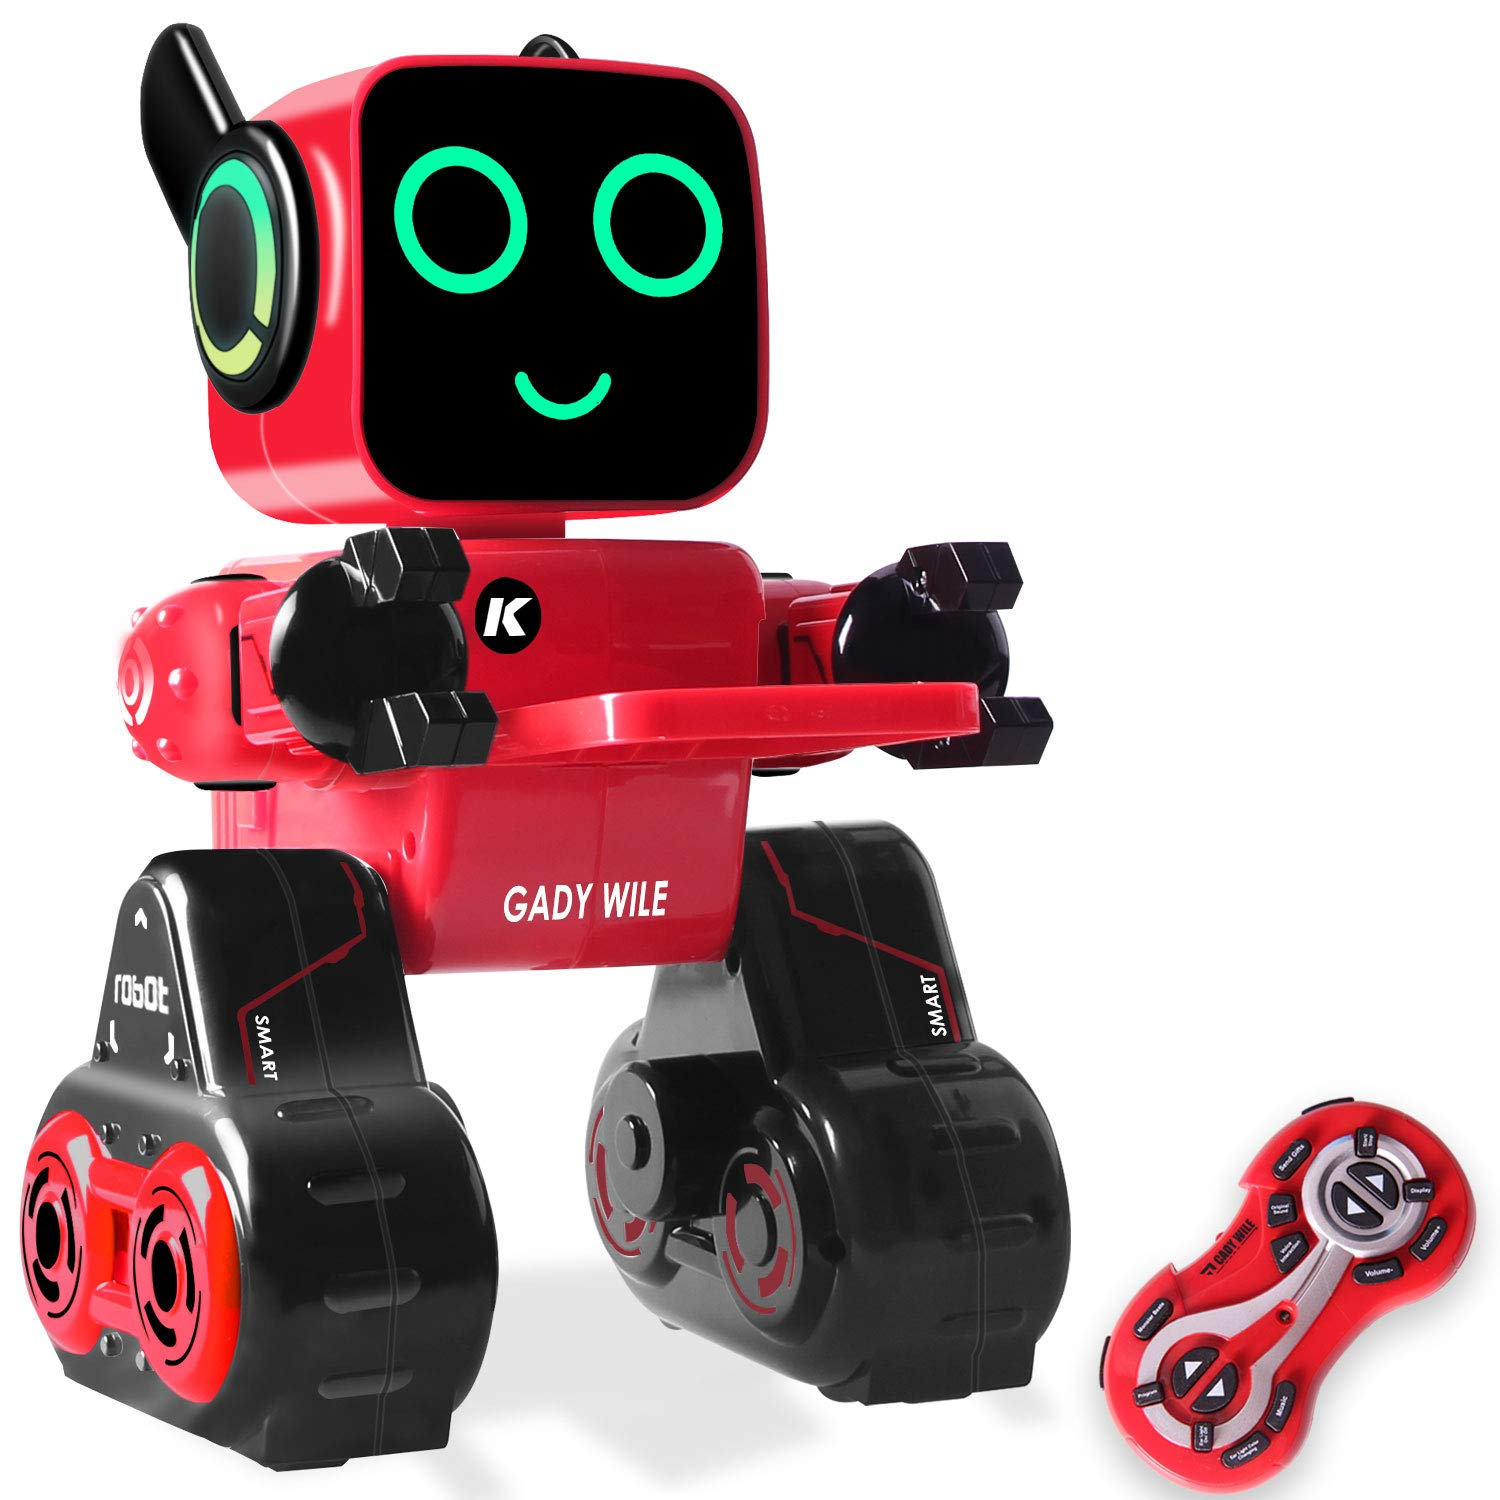 KIDdesigns Programmable Remote Control Toy Robot for Kids,Touch & Sound Control, Speaks, Dance Moves, Plays Music. Built-in Coin Bank.Rechargeable RC Robot Kit for Boys, Girls All Ages-Red/Black